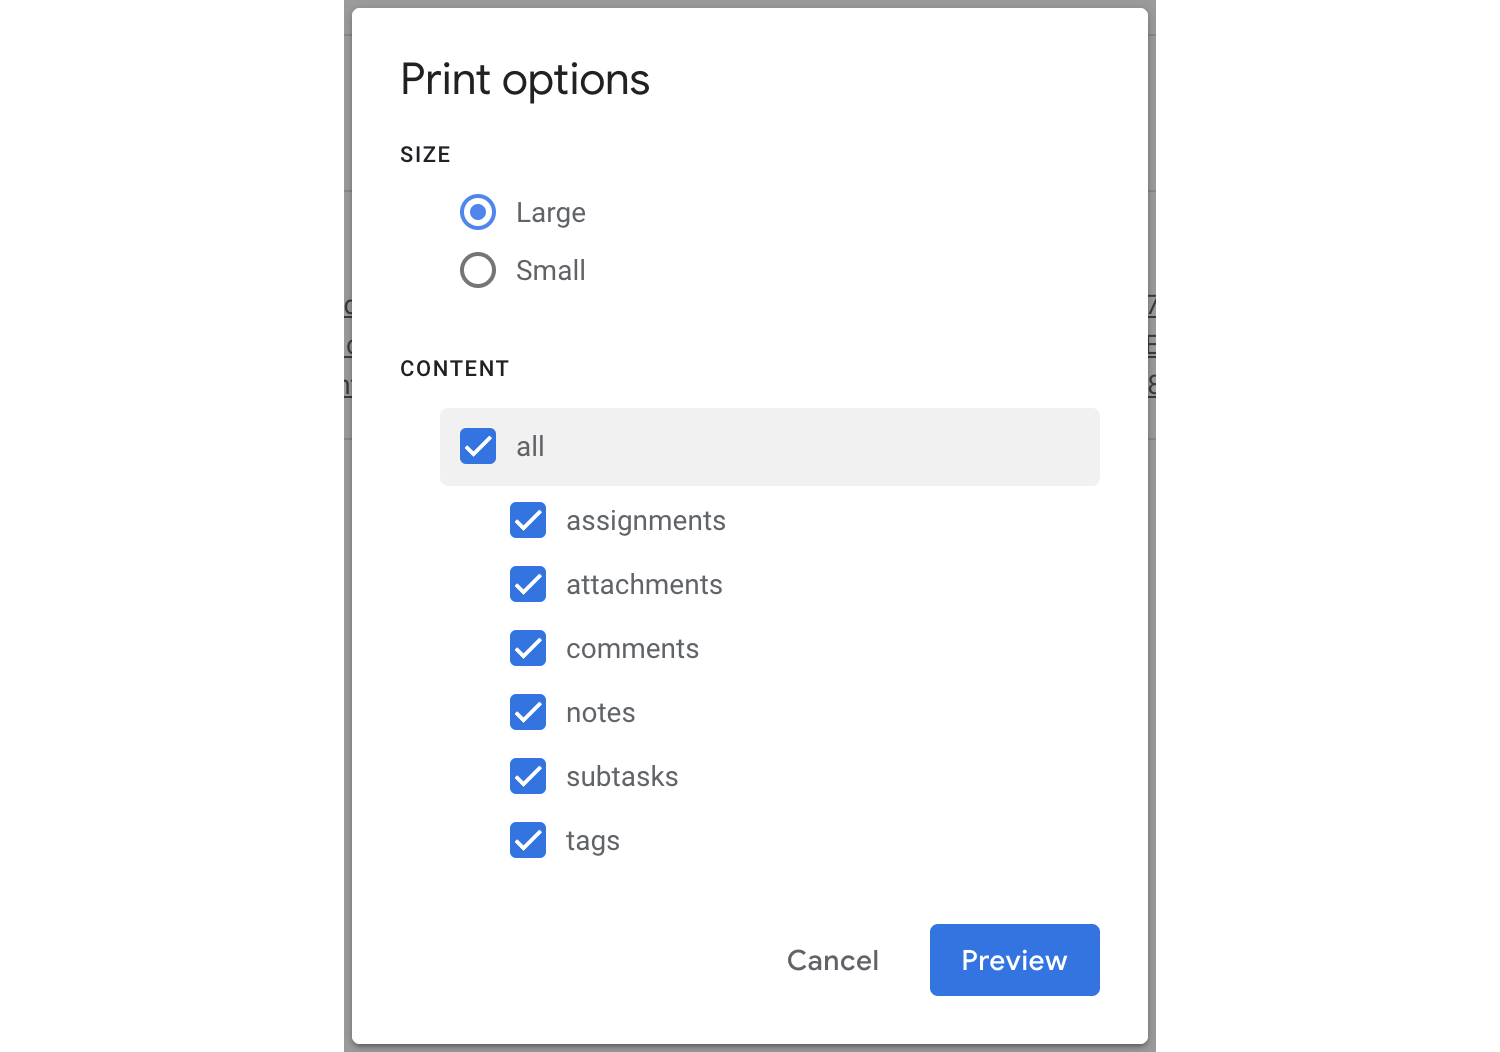 Select what information you'd like included when you print your queue